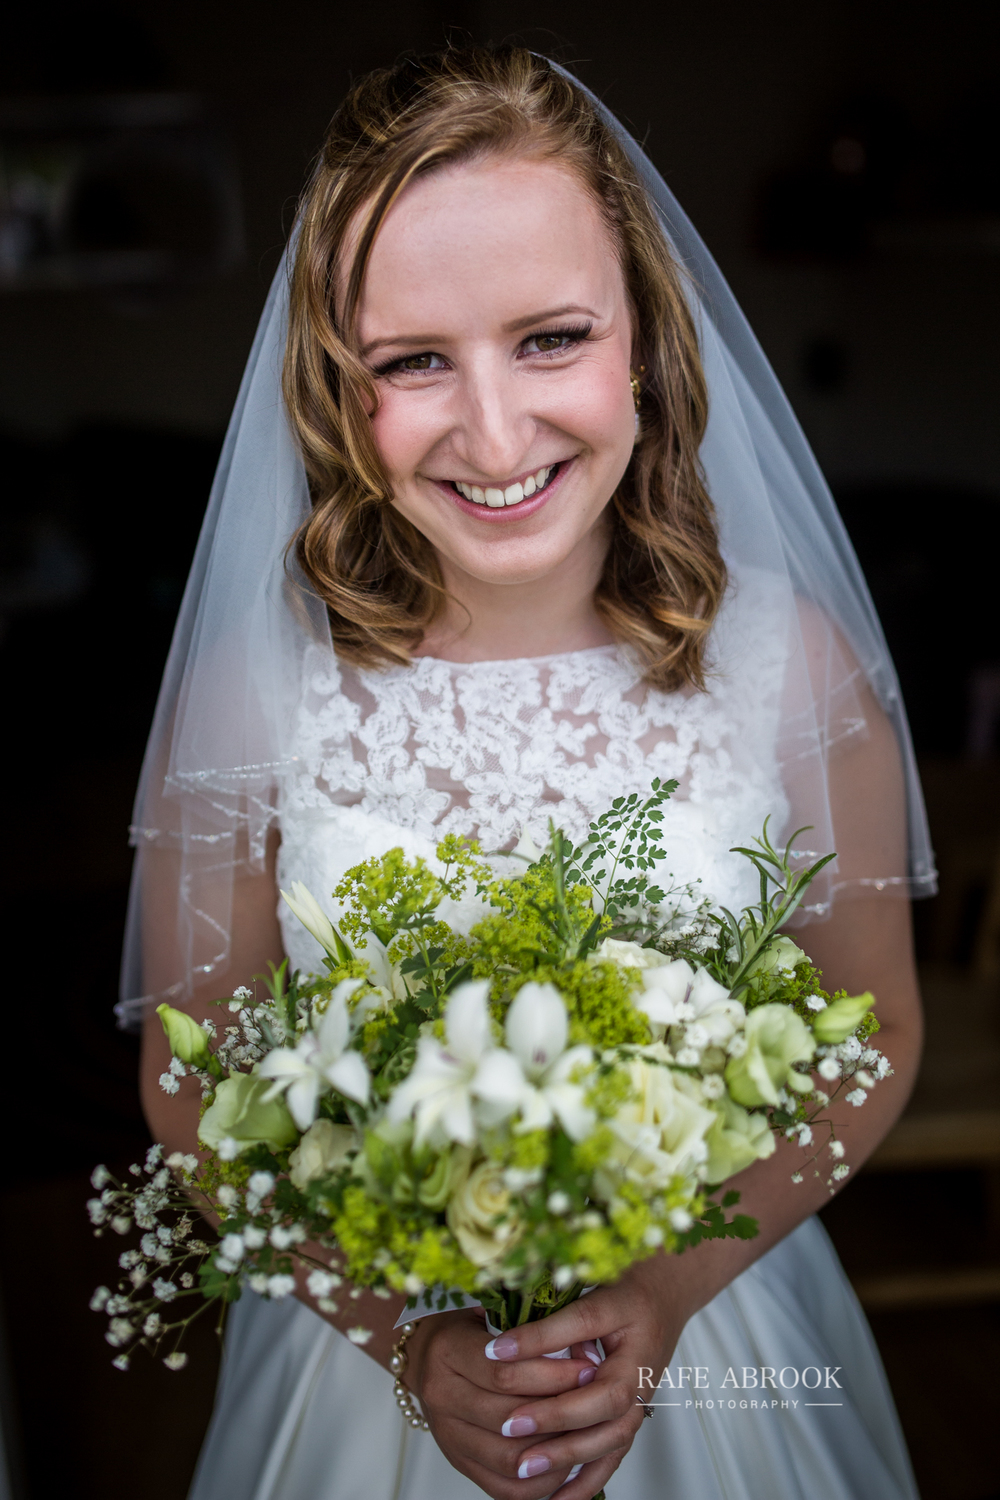 wedding photographer hertfordshire noke thistle hotel st albans -1084.jpg